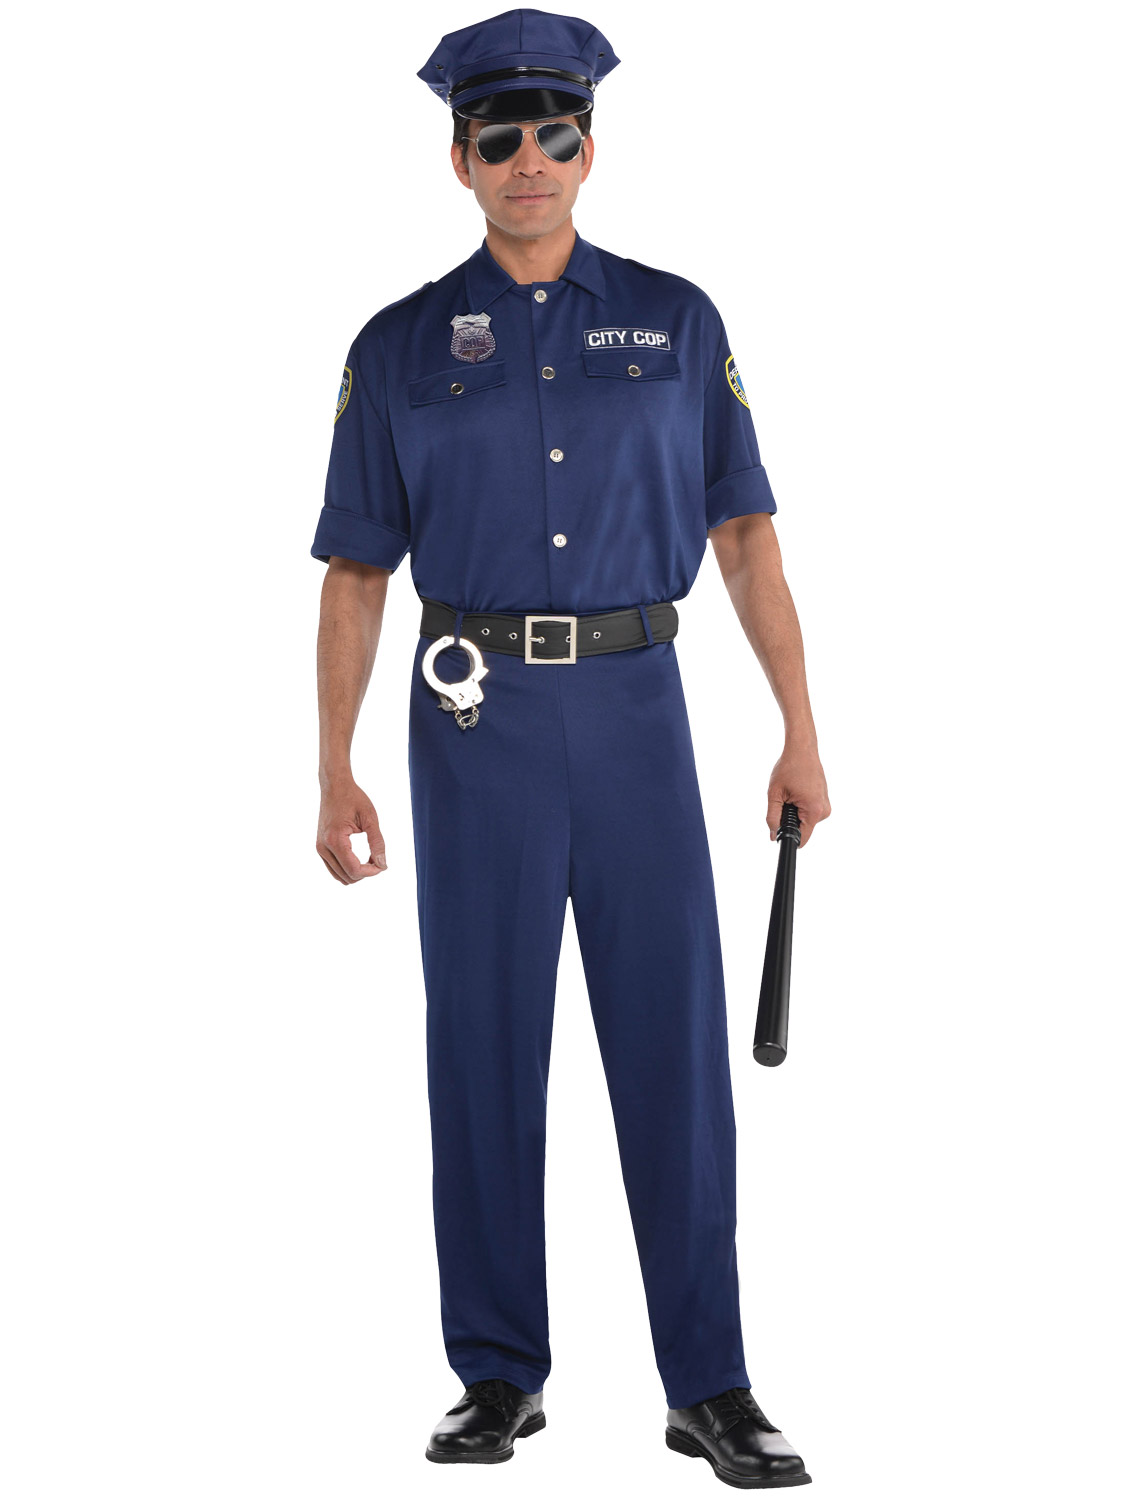 Police officer uniforms